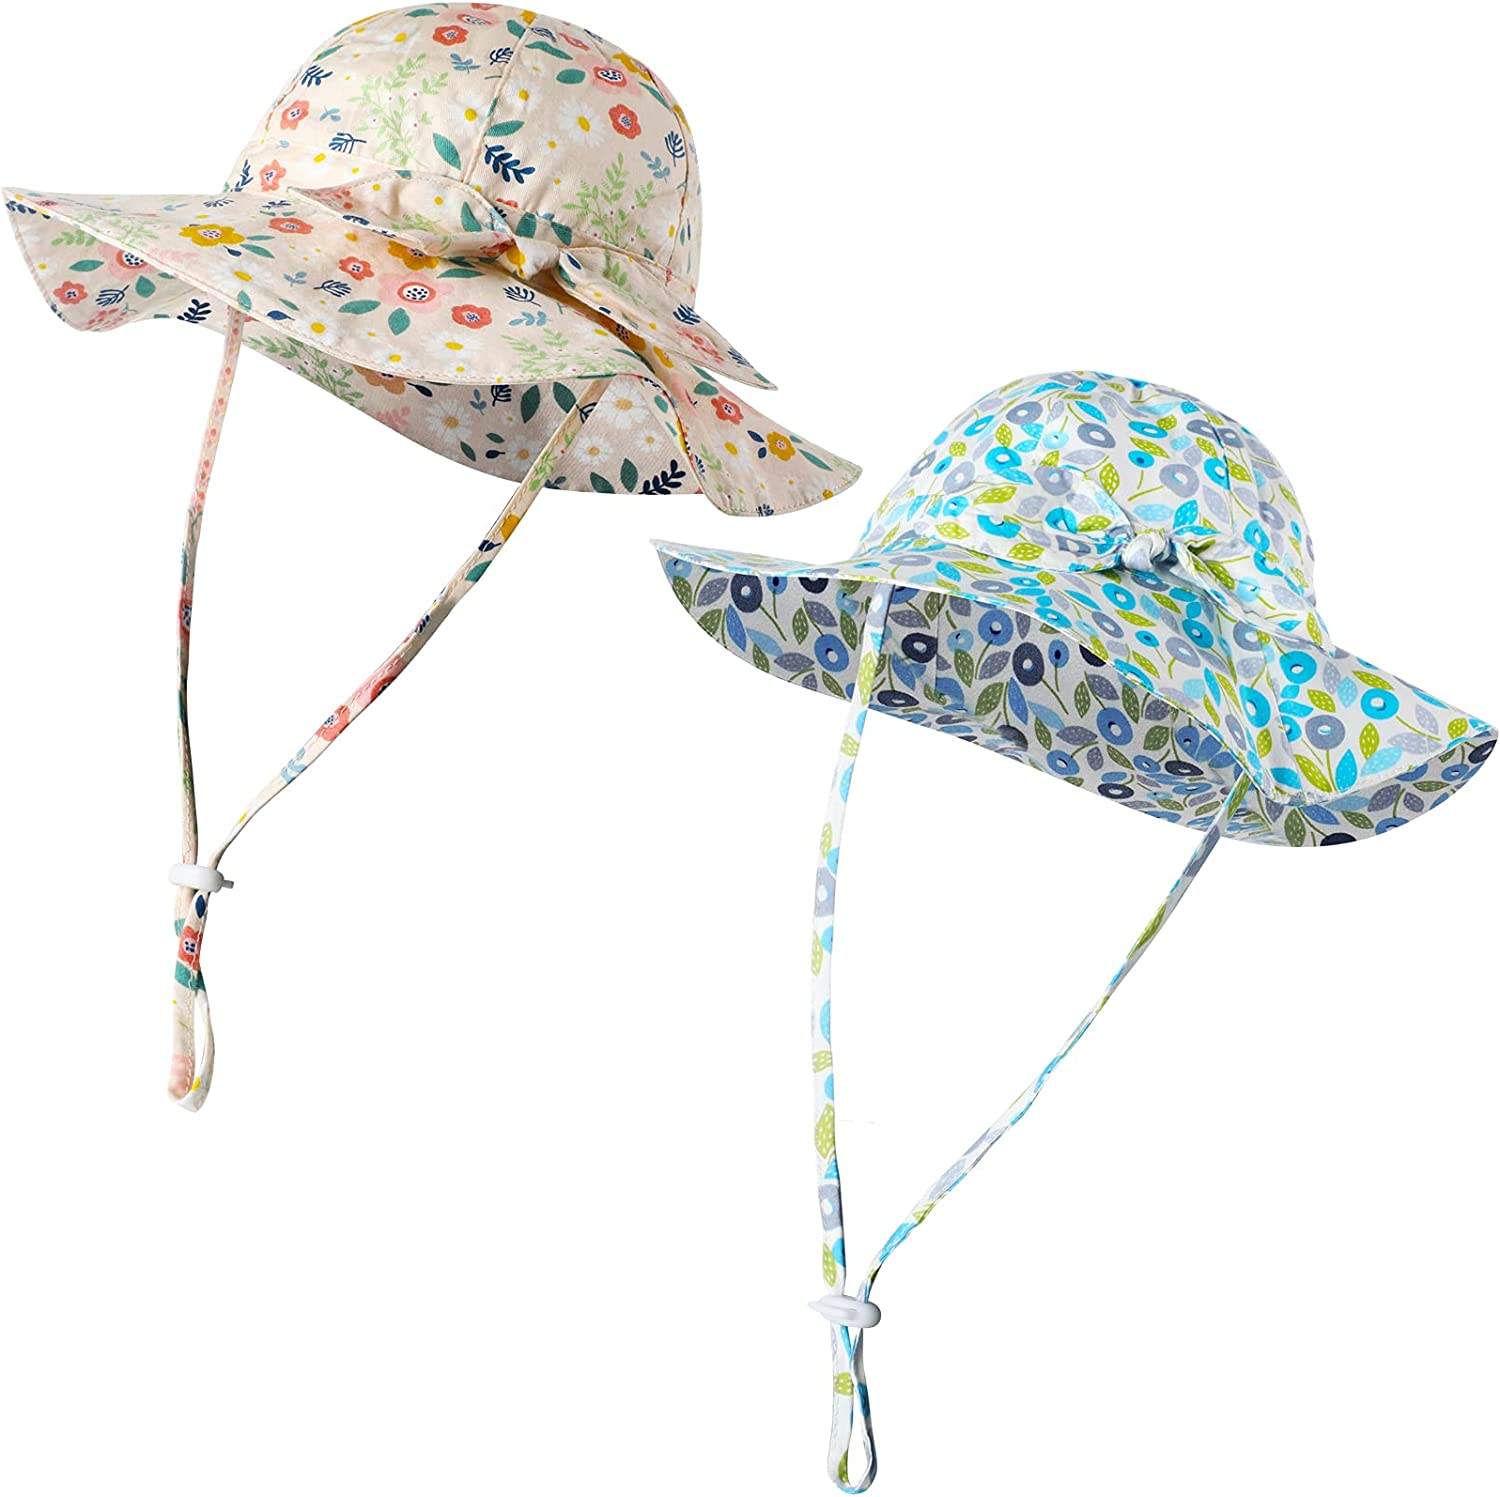 2 Pieces Summer Baby Hats Fort Worth Mall New Shipping Free Toddler Adjustable Girl Sun